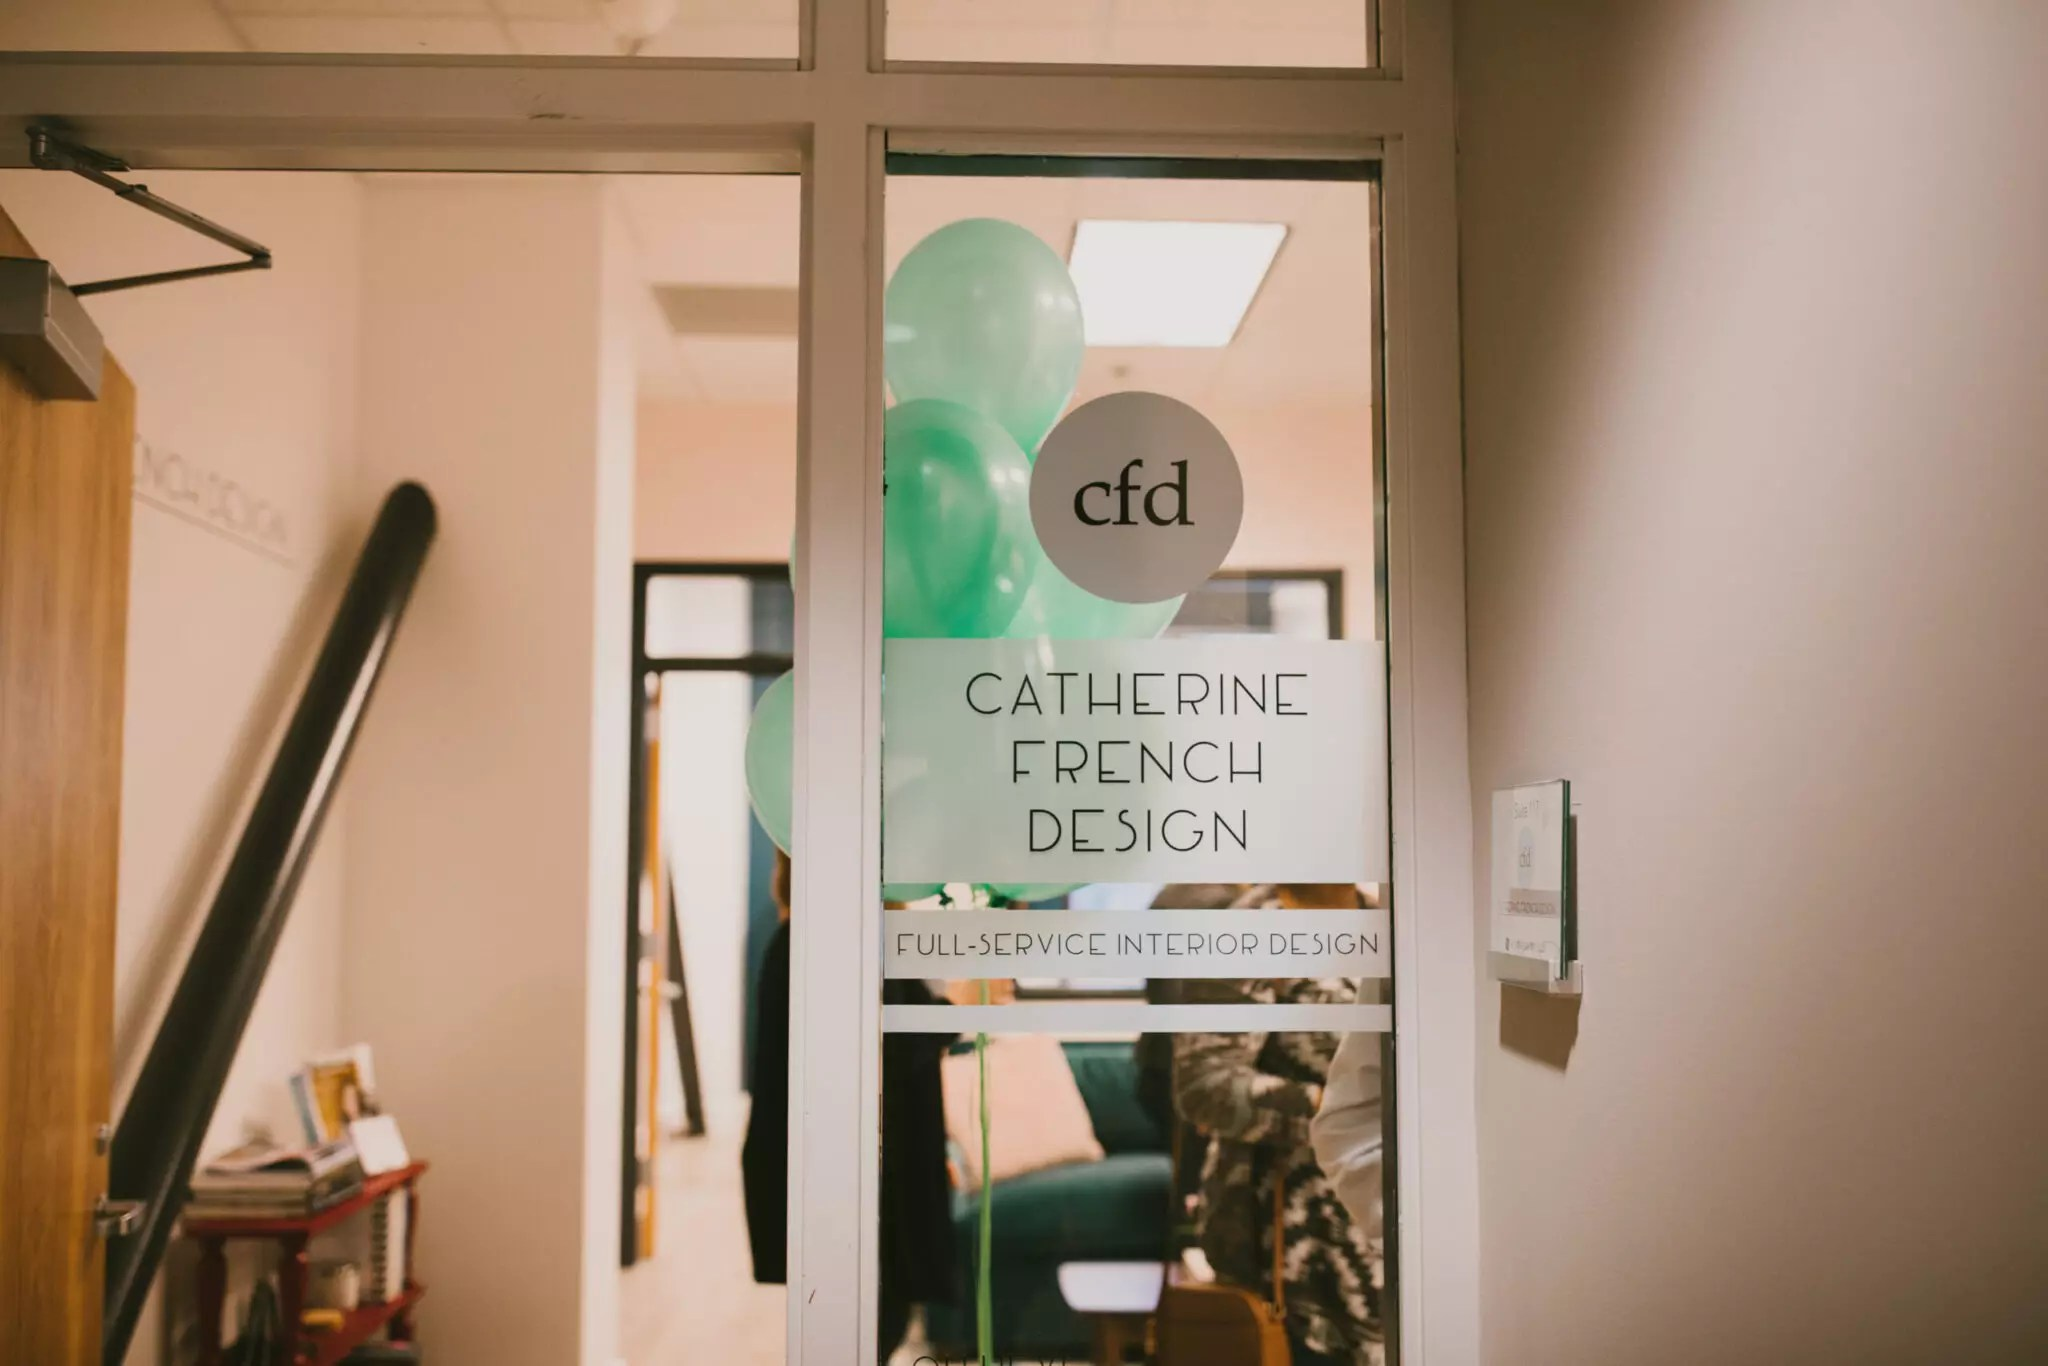 Catherine French Design Grand Opening of New Office Space